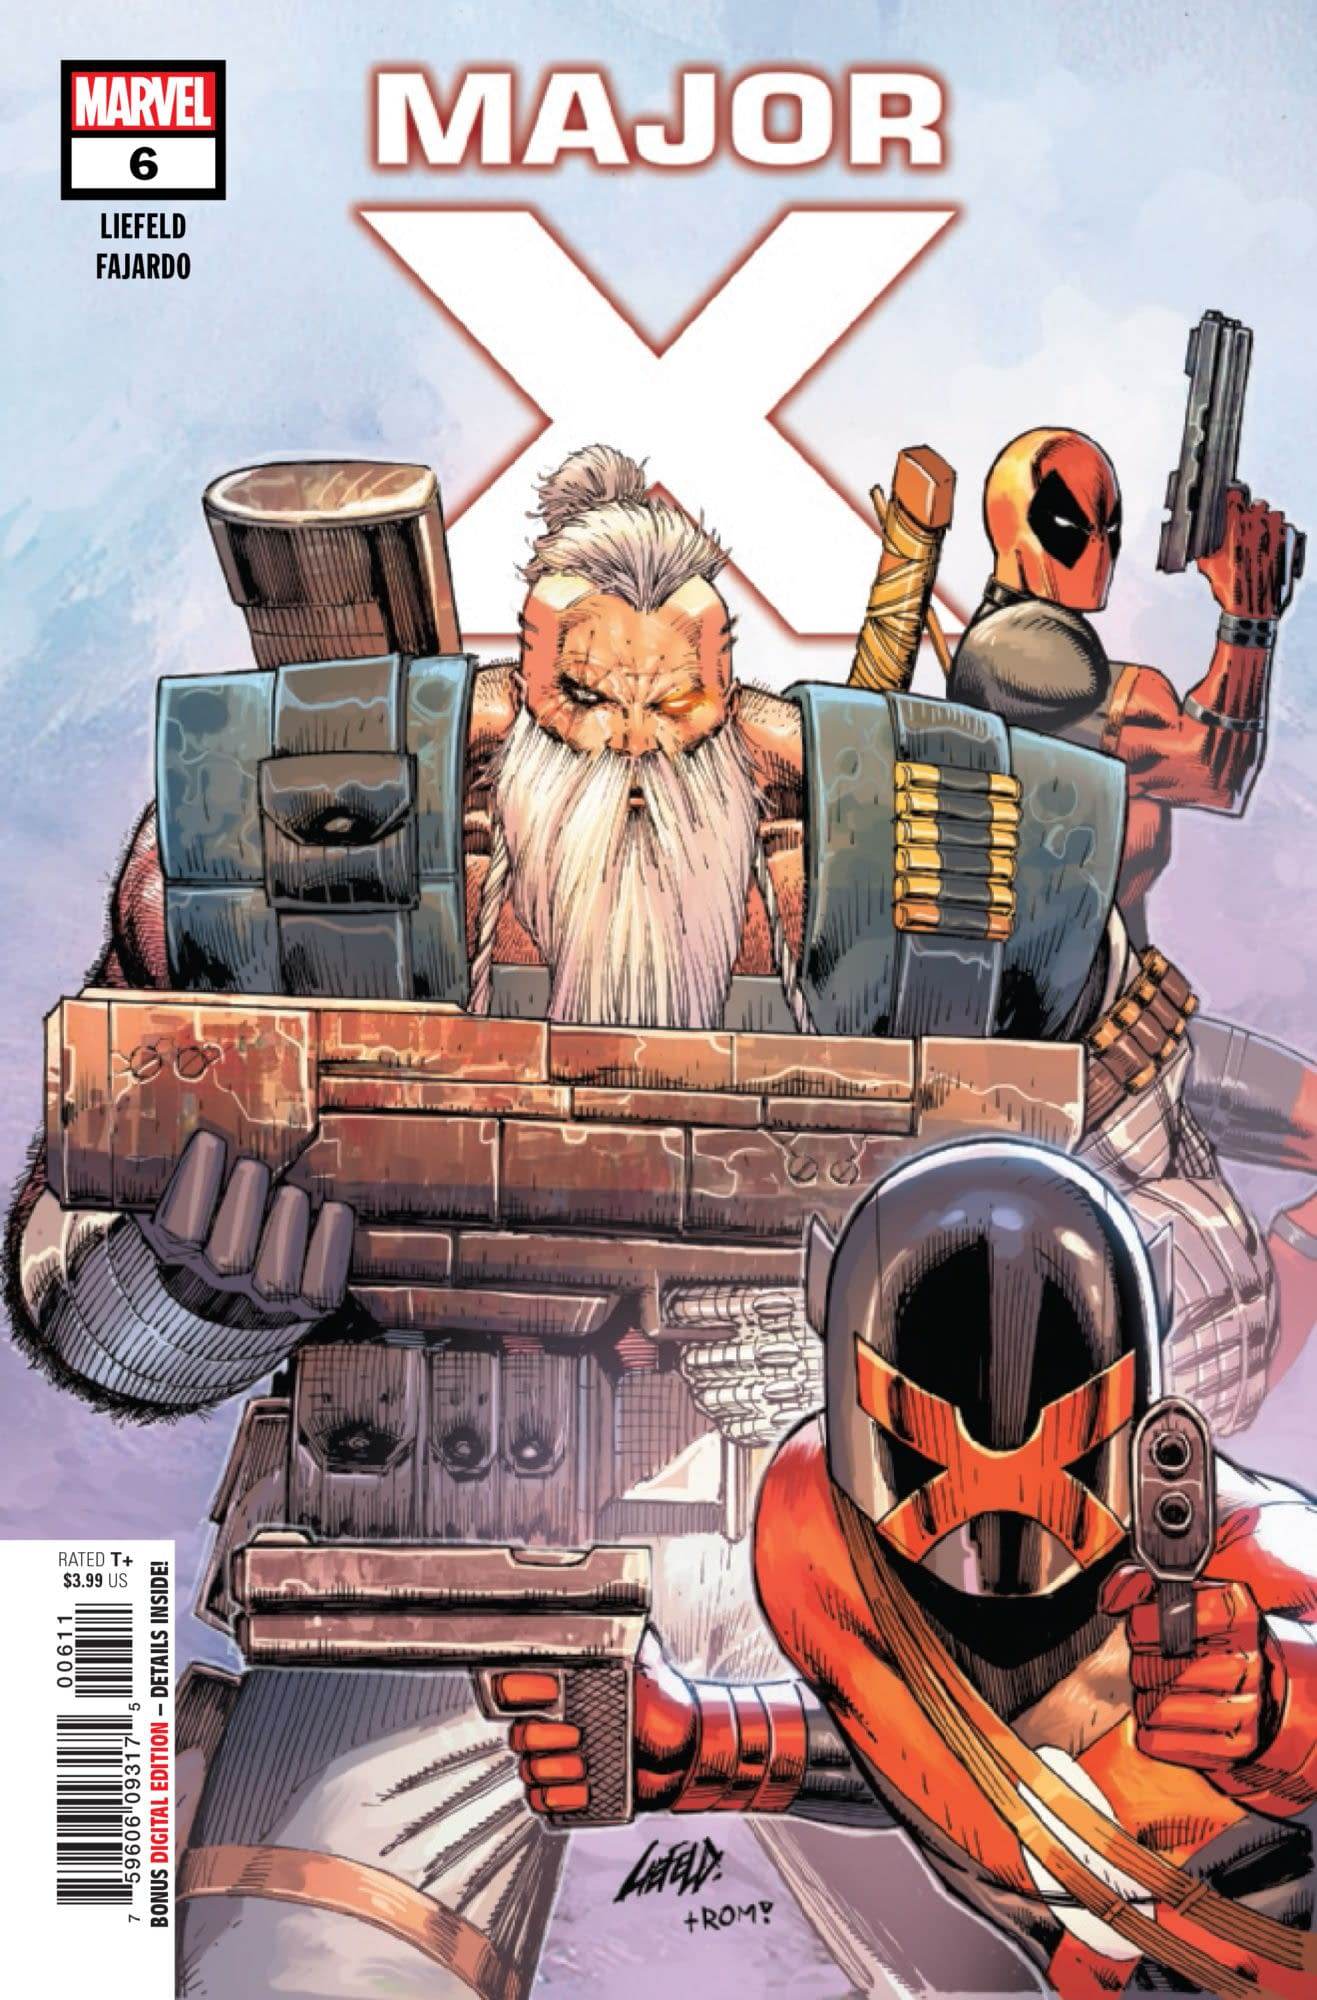 Deadpool Joins the Fight... But on Whose Side? Major X #6 Preview